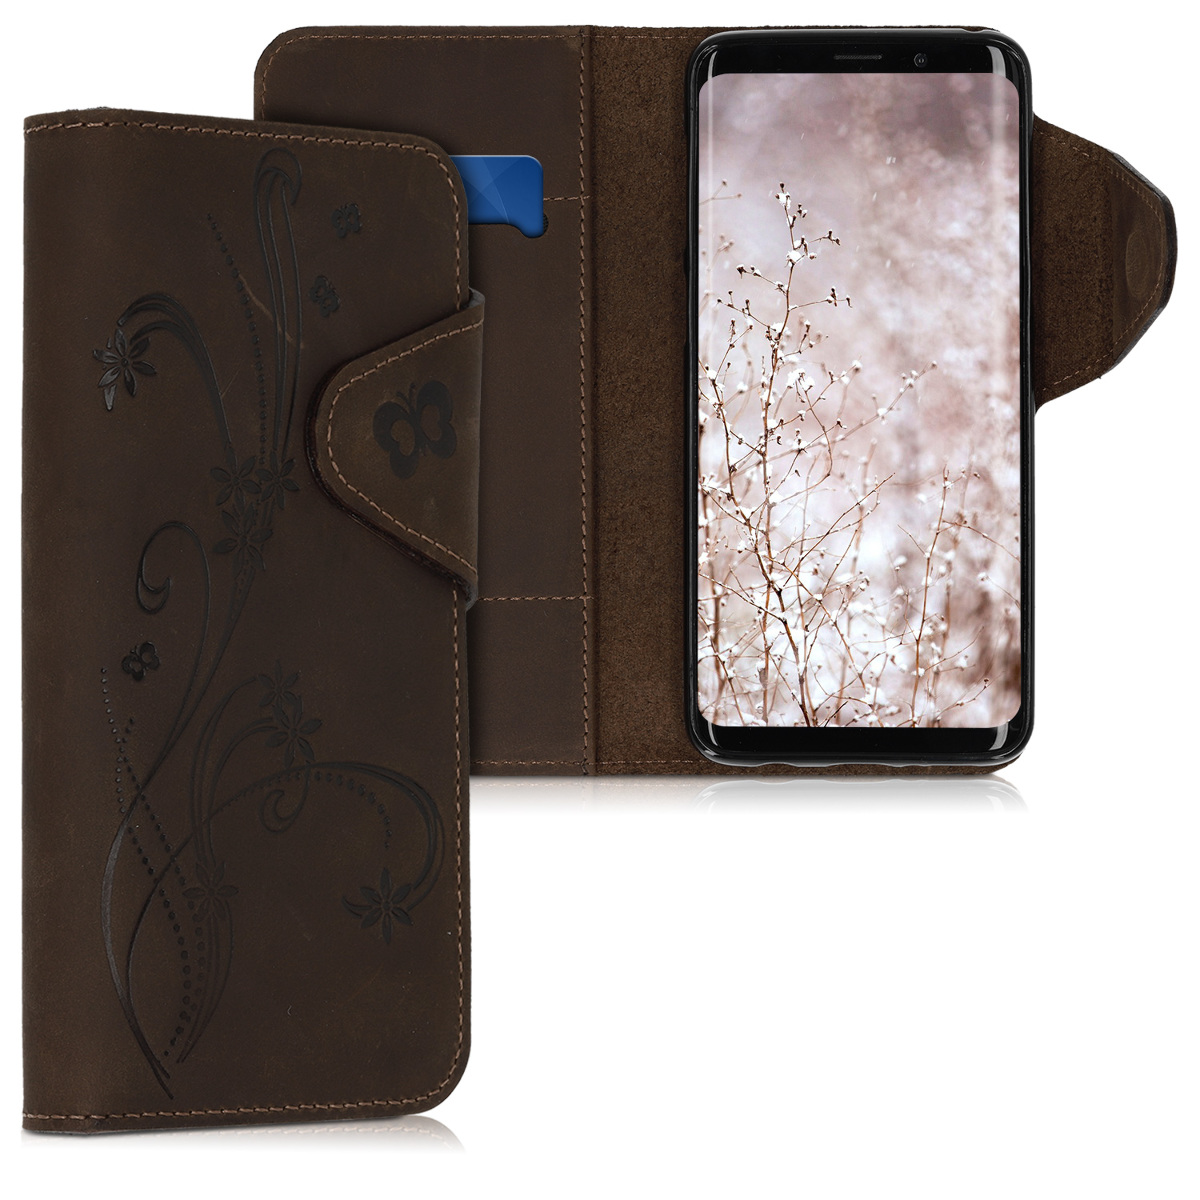 Pouzdro peněženka pro Samsung Galaxy S9 - Real Leather Book Style Cover with Card Slot - Butterfly Tendril Brown